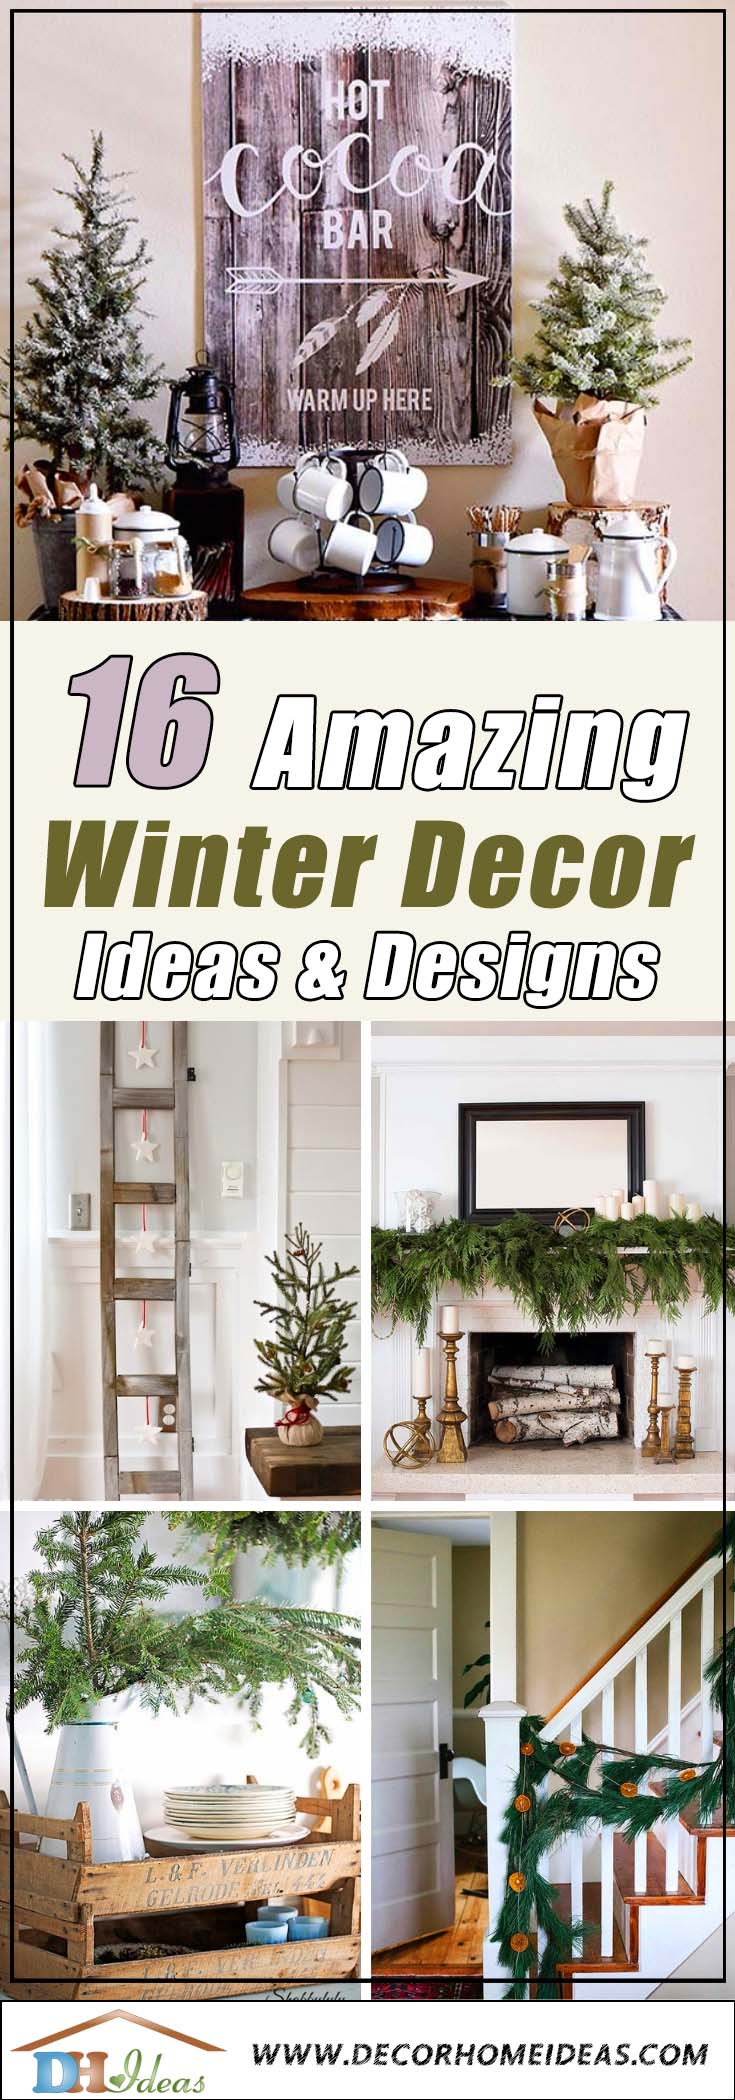 Best Winter Decorations #winterdecor #homdecor #winter #decorhomeideas